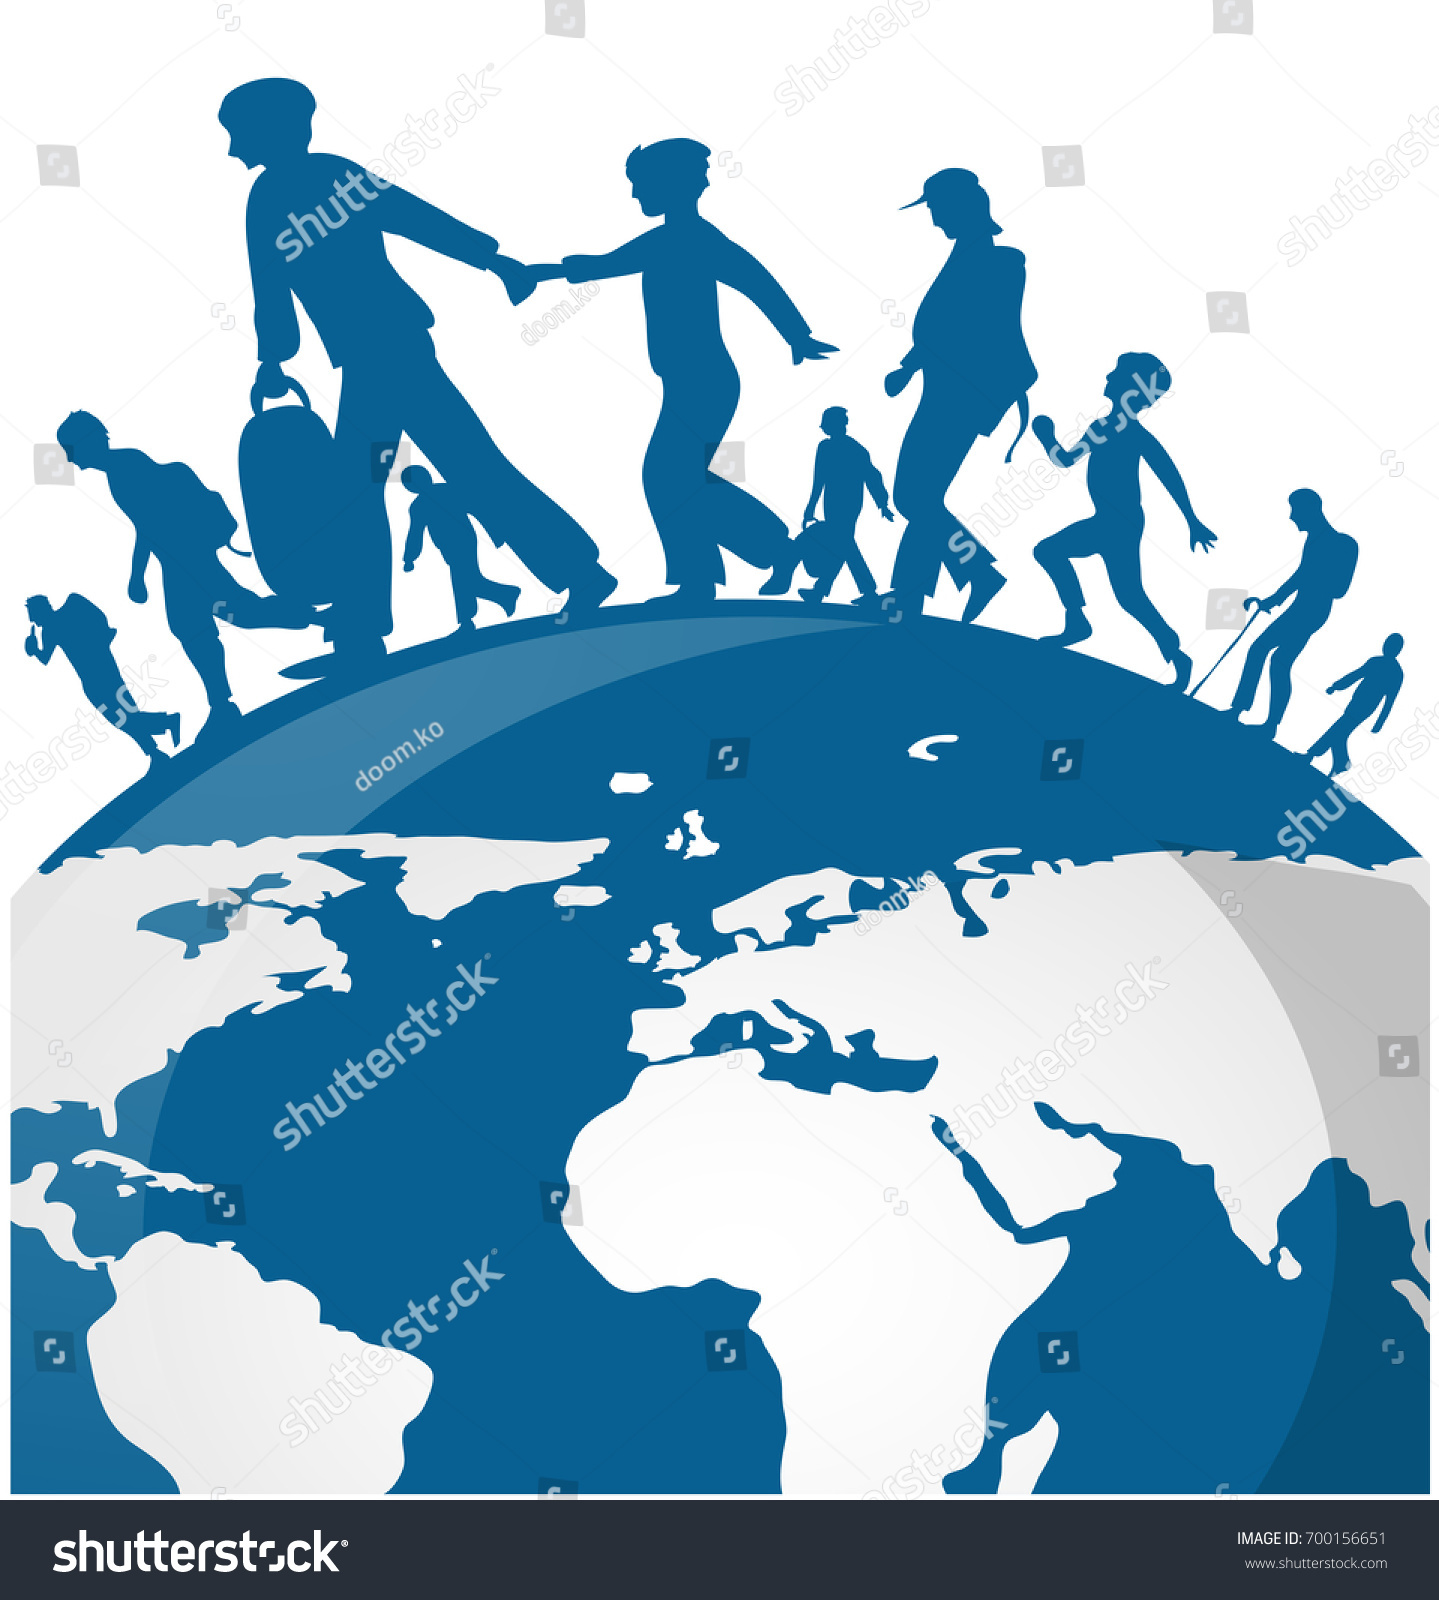 Immigration people on world map background vectores en stock immigration people on world map background gumiabroncs Choice Image